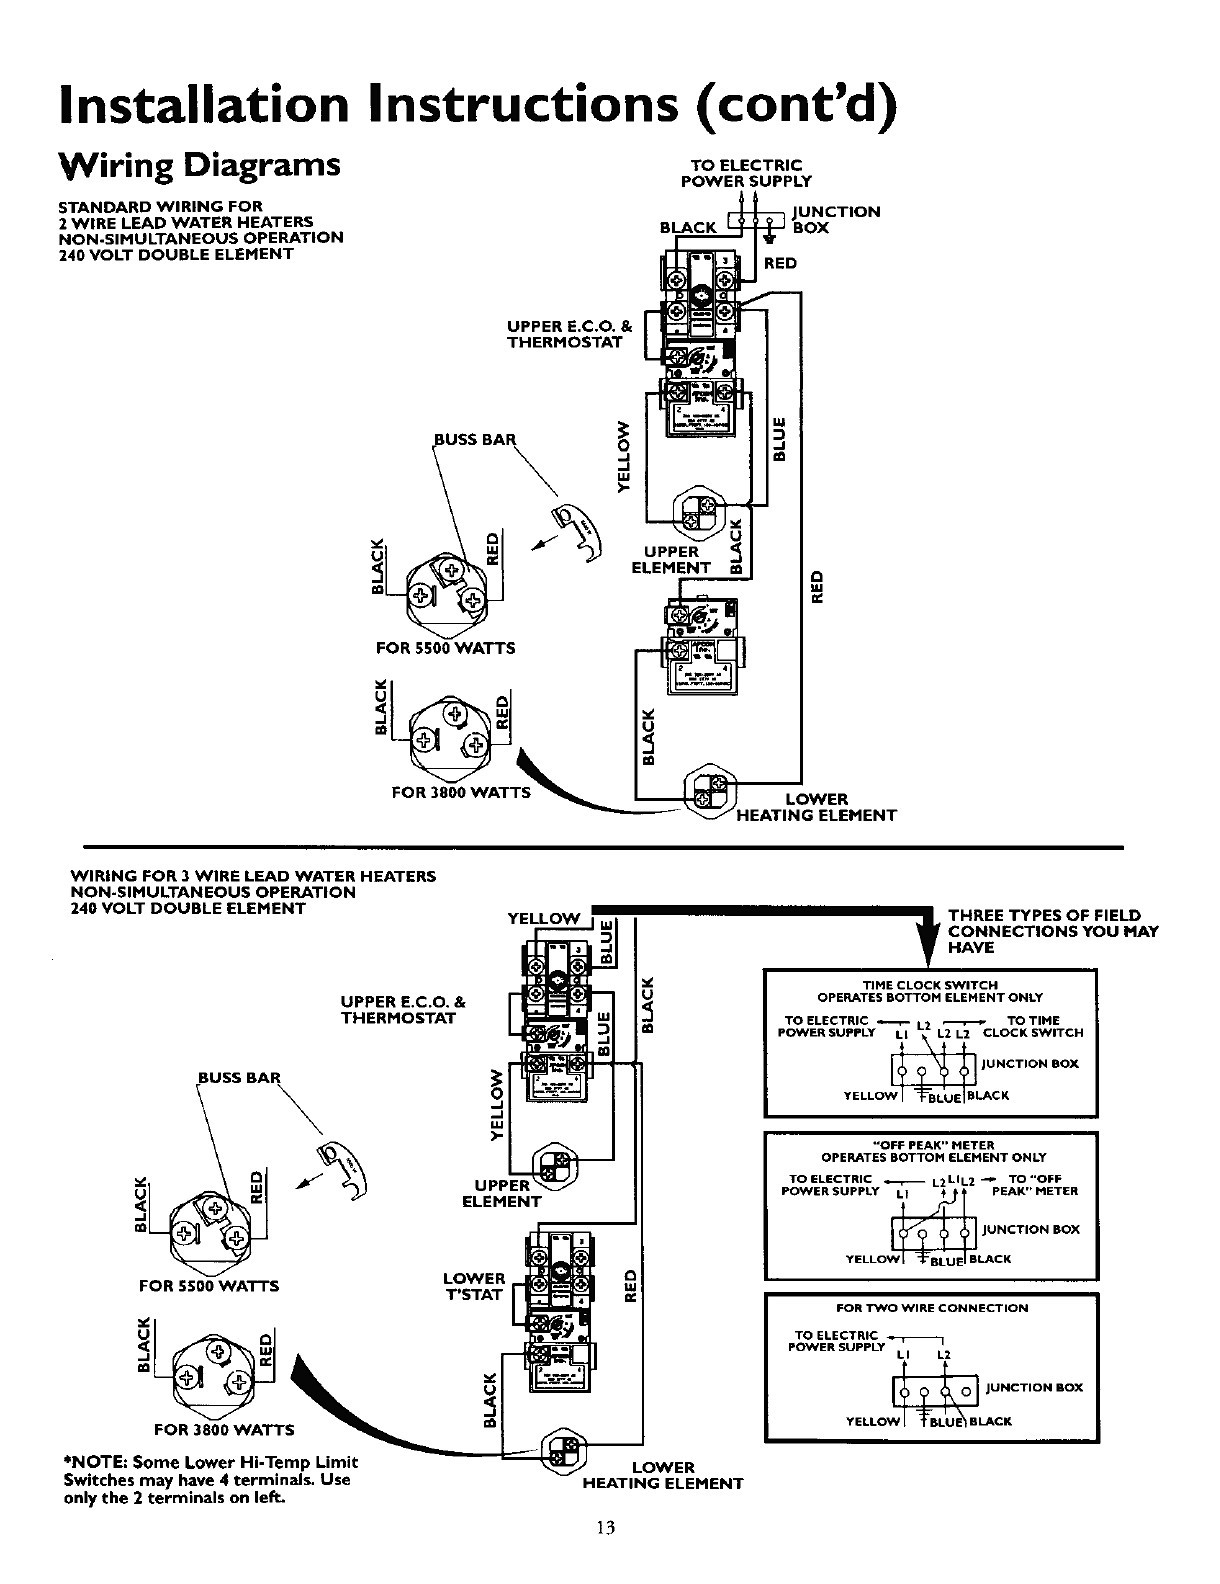 Hot Water Heater Wiring Diagram from wholefoodsonabudget.com